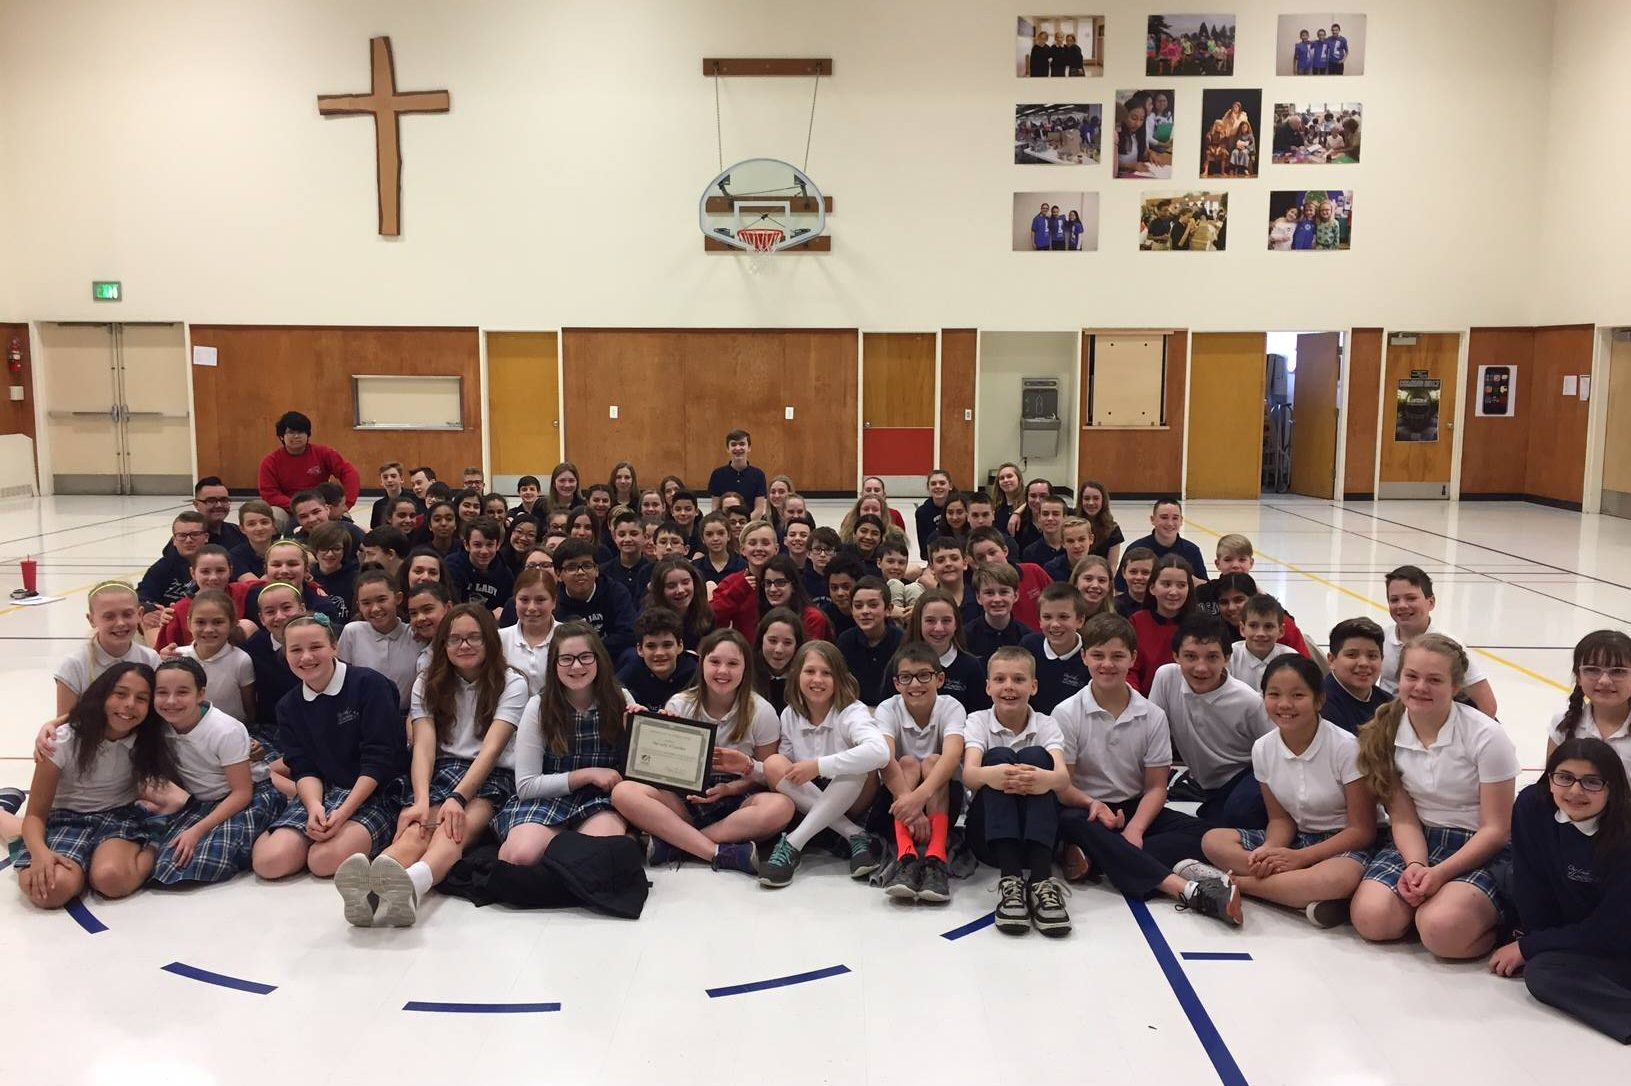 Our Lady of Lourdes Catholic School Students in Gym